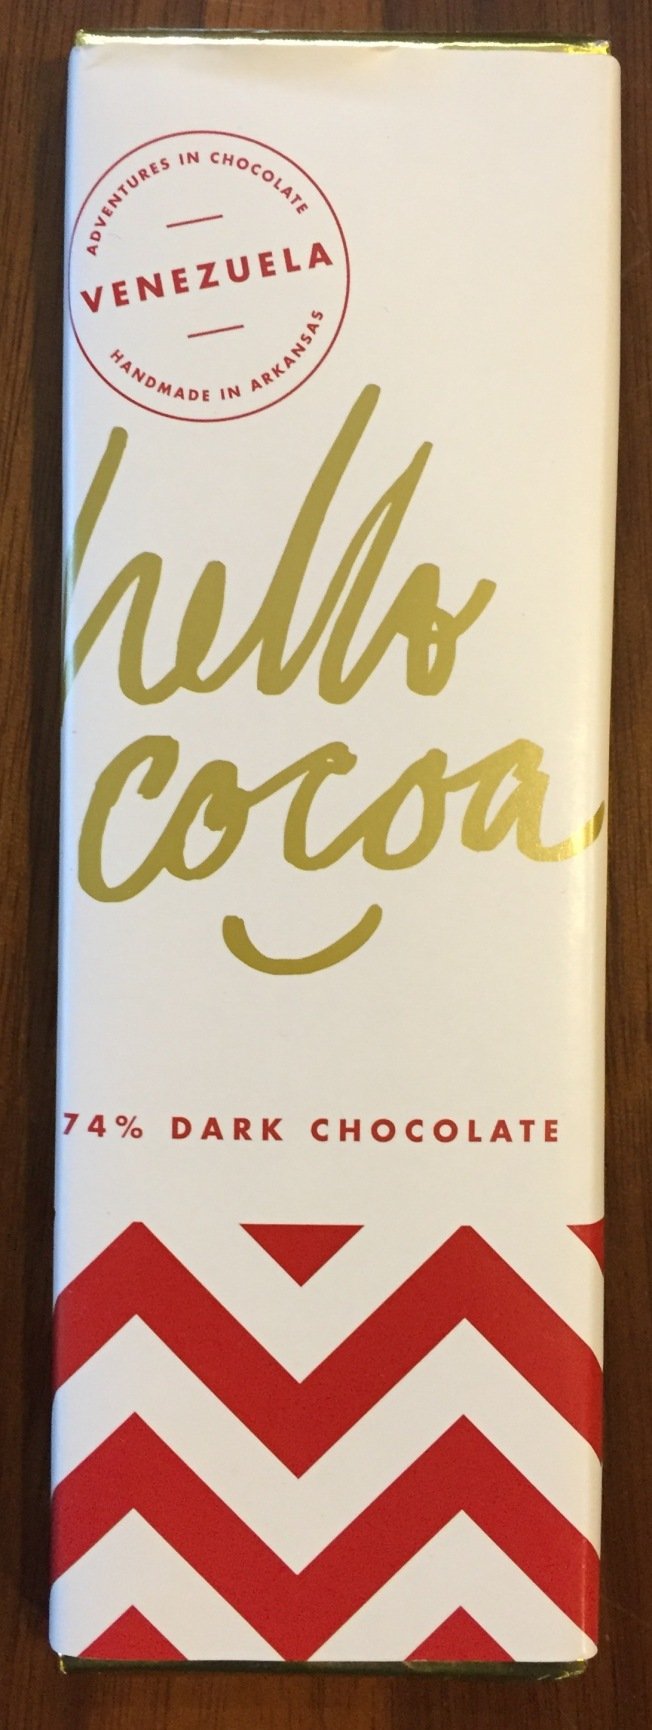 Hello Cocoa 74% Dark Chocolate Bar